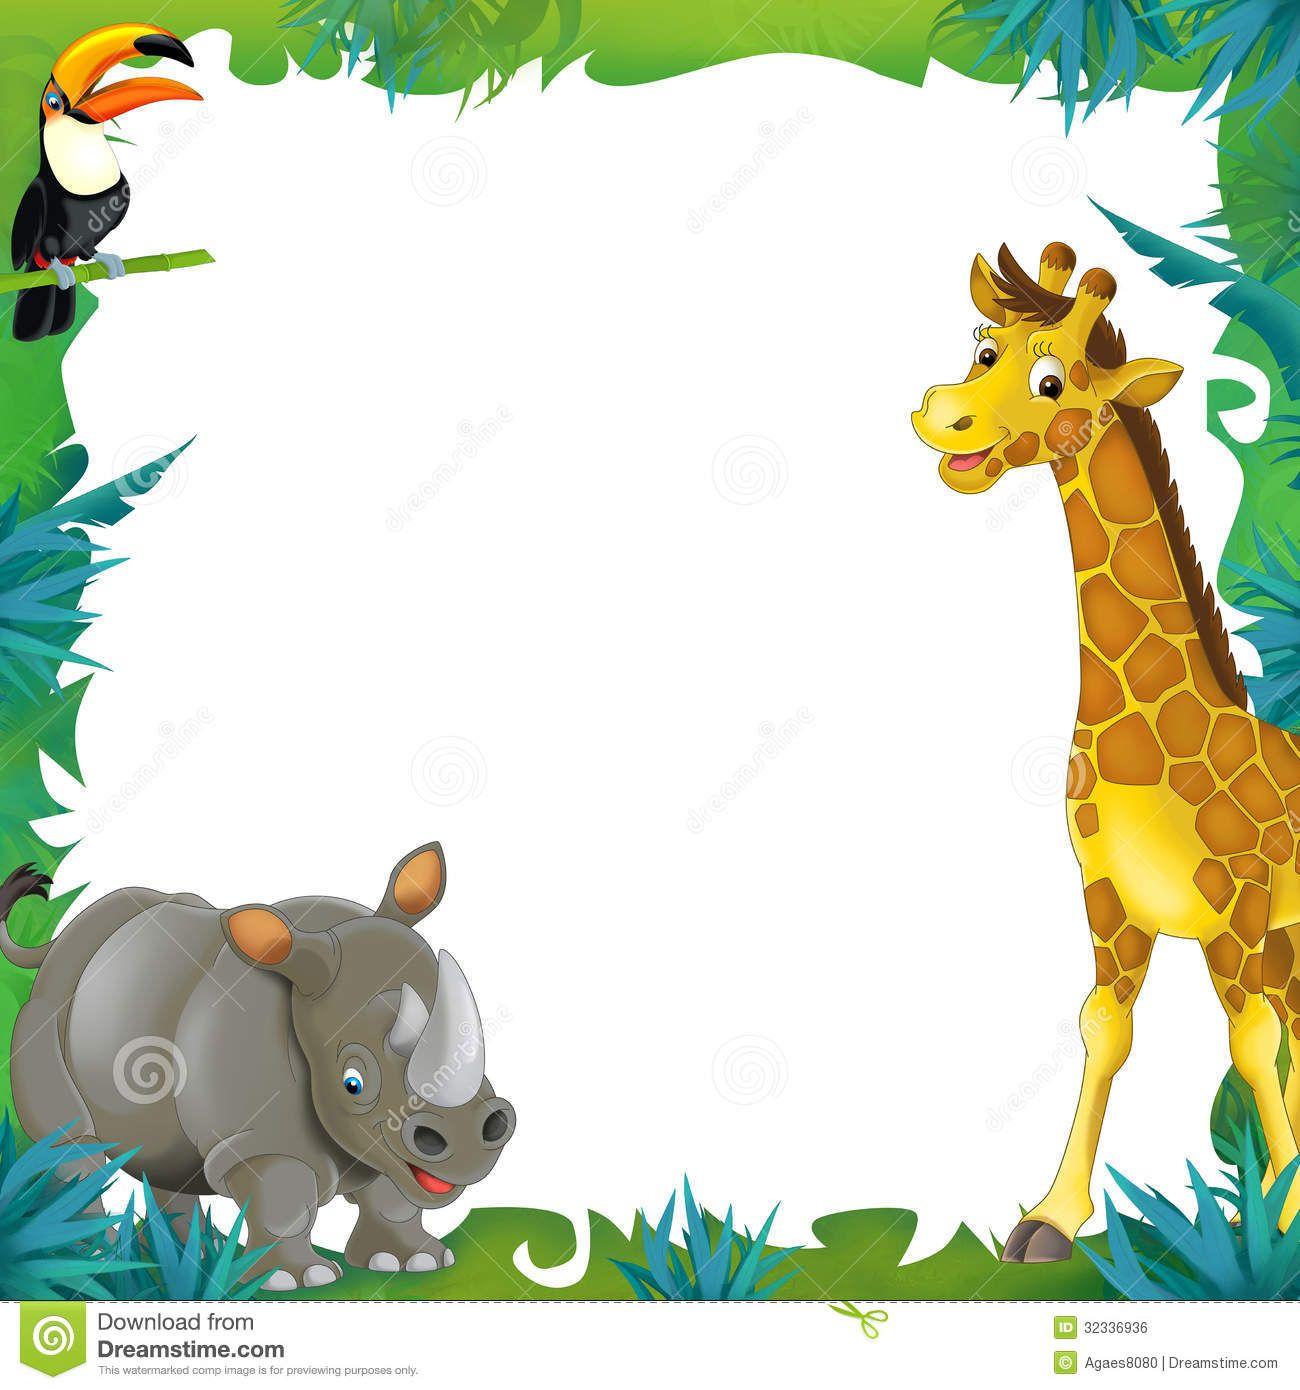 small resolution of cartoon safari jungle frame border template illustration for the children download from over 29 million high quality stock photos images vectors